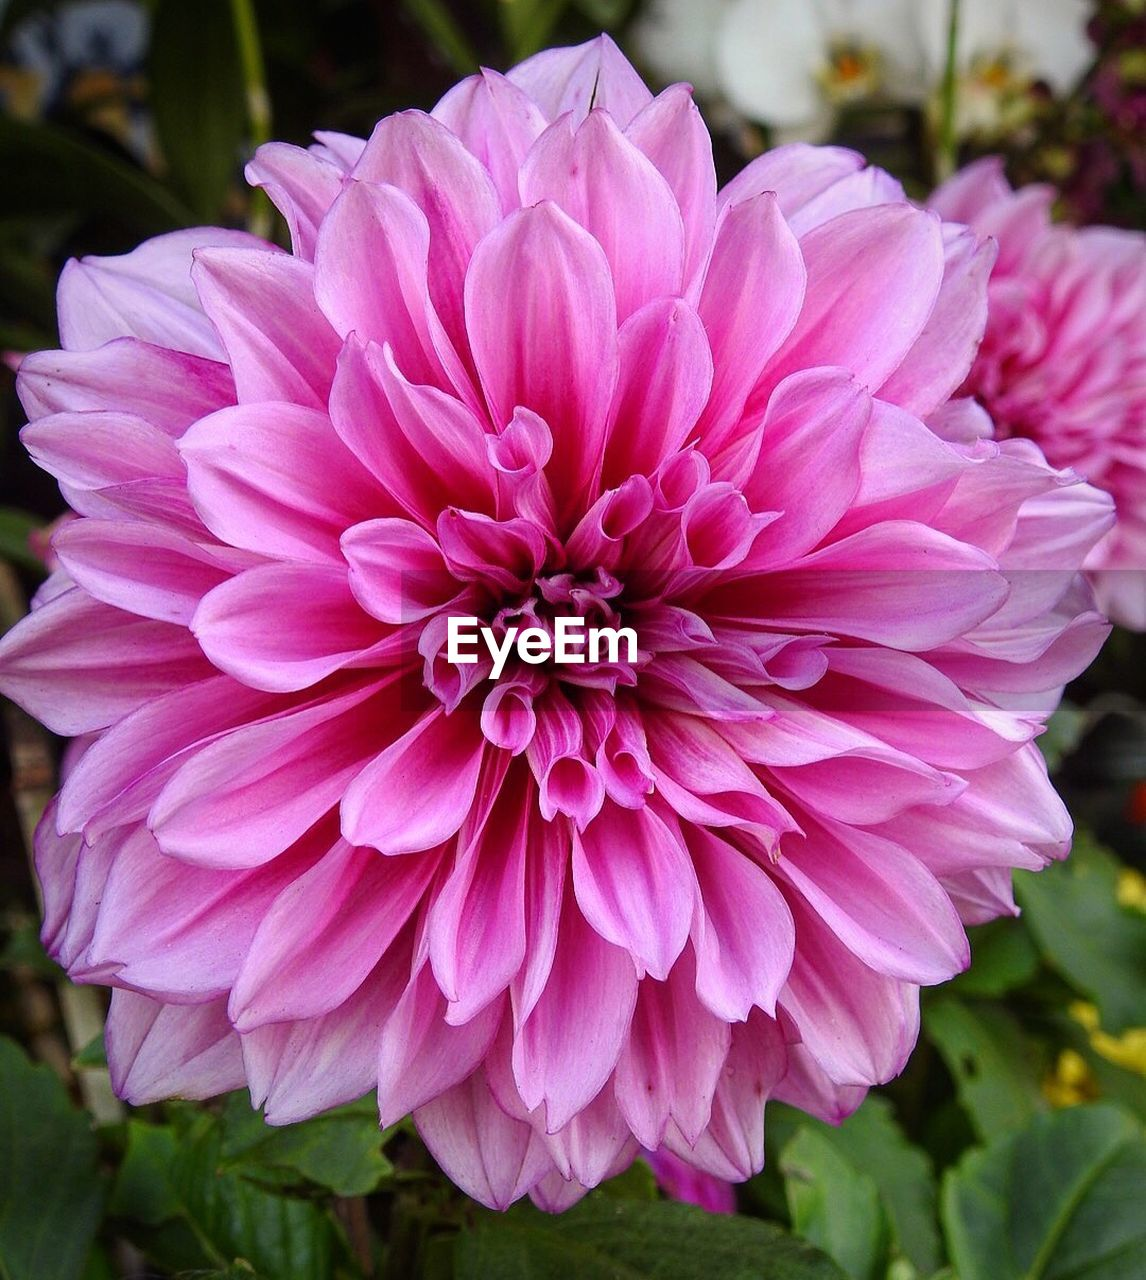 flower, petal, beauty in nature, nature, fragility, plant, flower head, growth, freshness, pink color, no people, blooming, outdoors, close-up, dahlia, focus on foreground, day